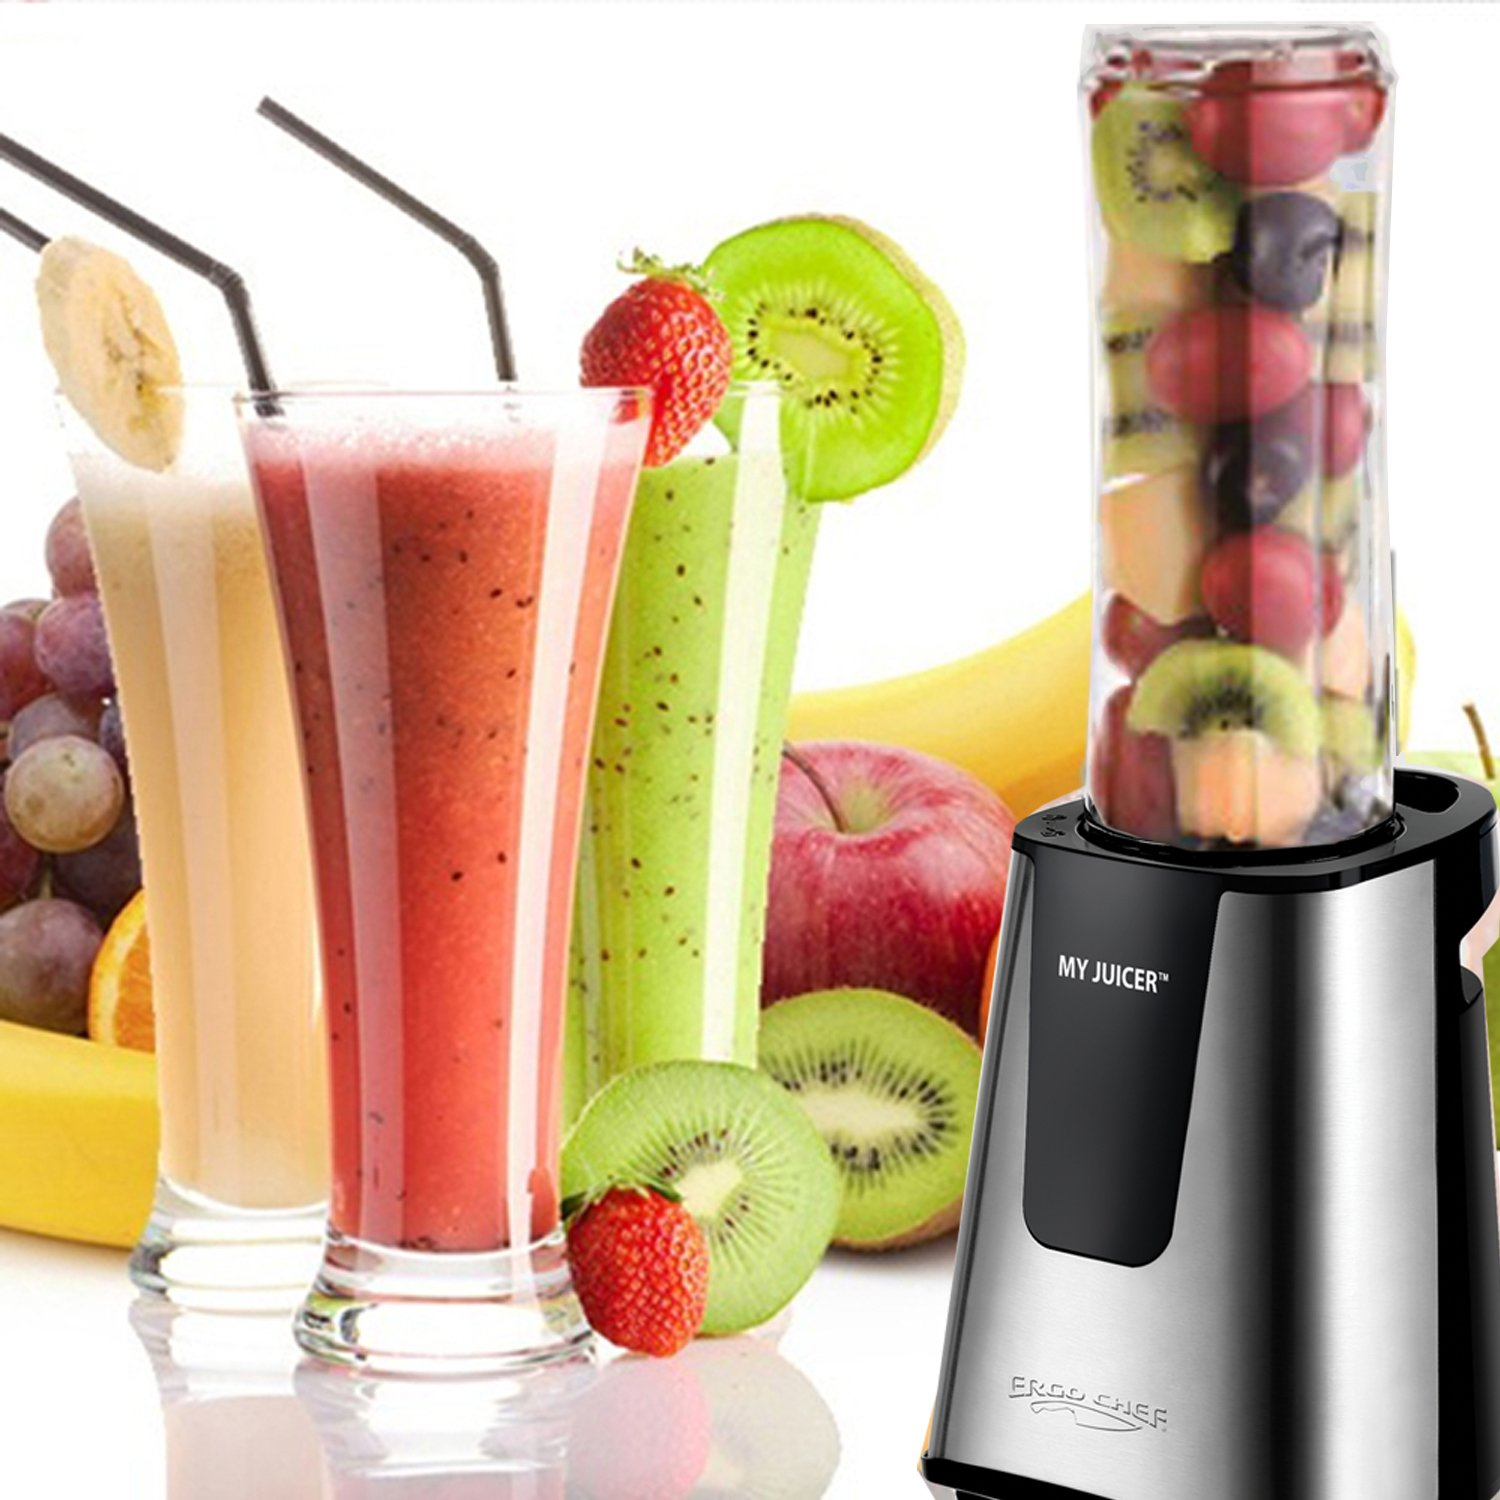 Ergo Chef My Juicer II Personal Juicer Smoothie Blender 300-Watt Stainless Steel by Ergo Chef   B01GUE7YKS